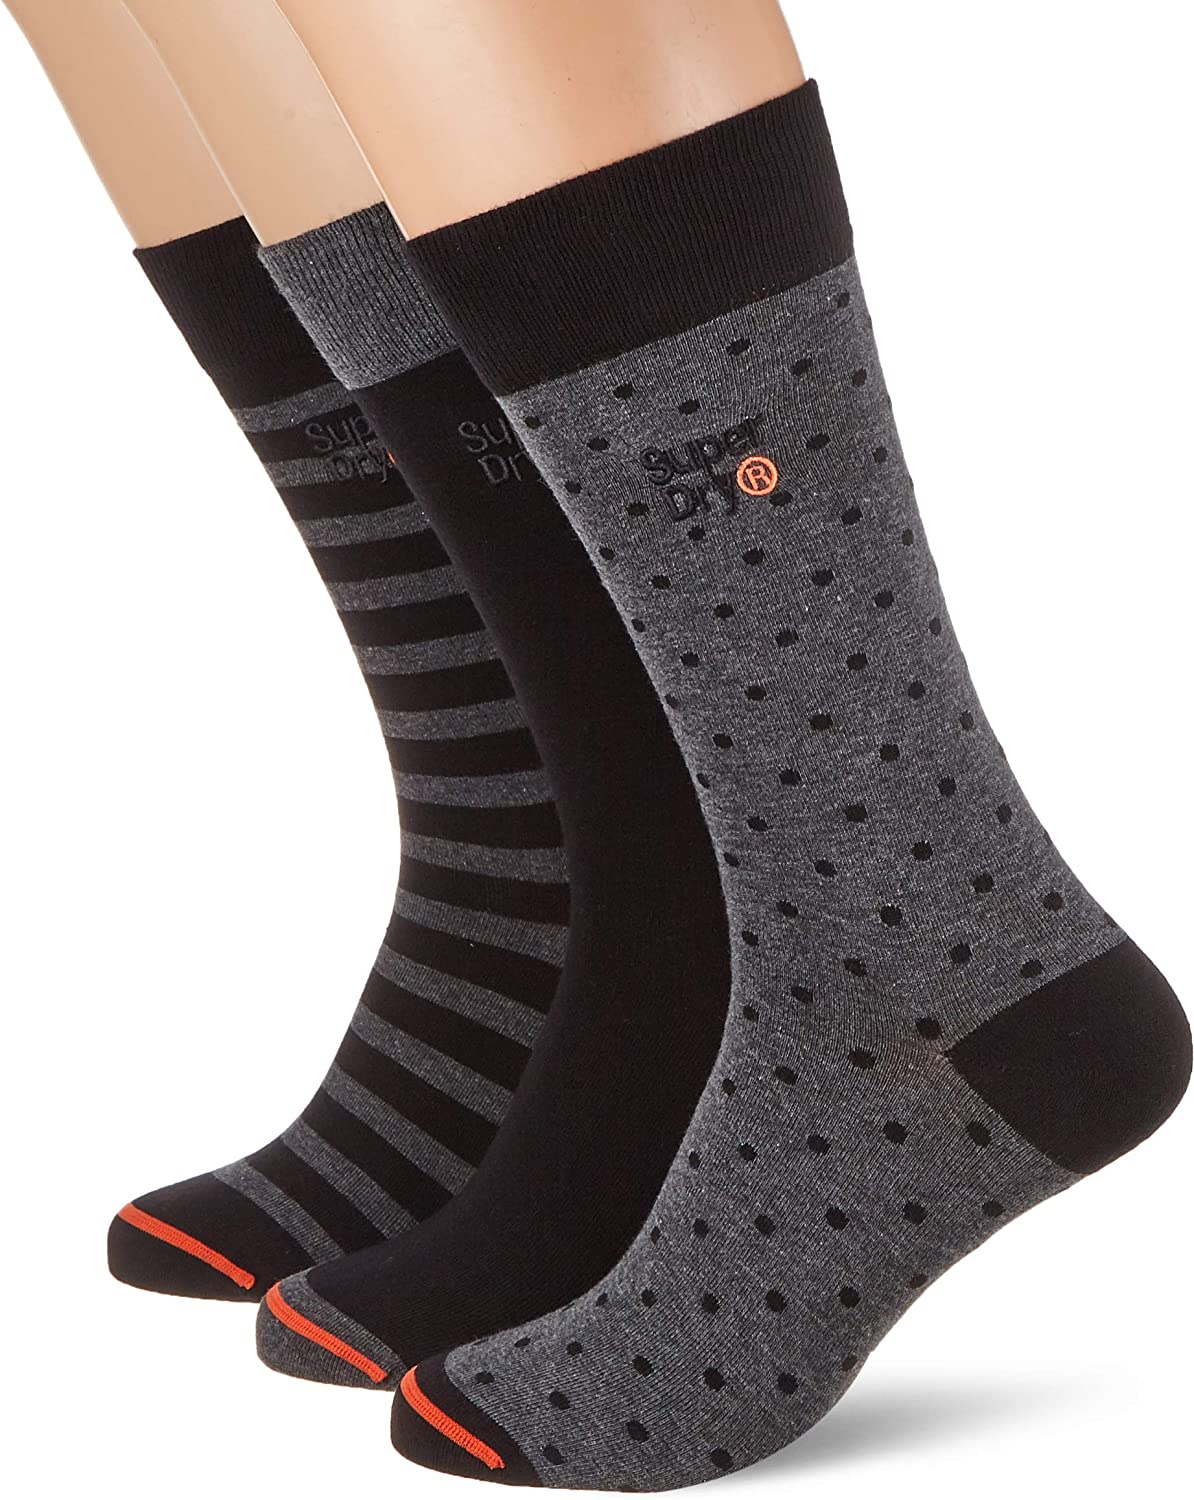 Superdry City Sock Triple Pack Calcetines para Hombre